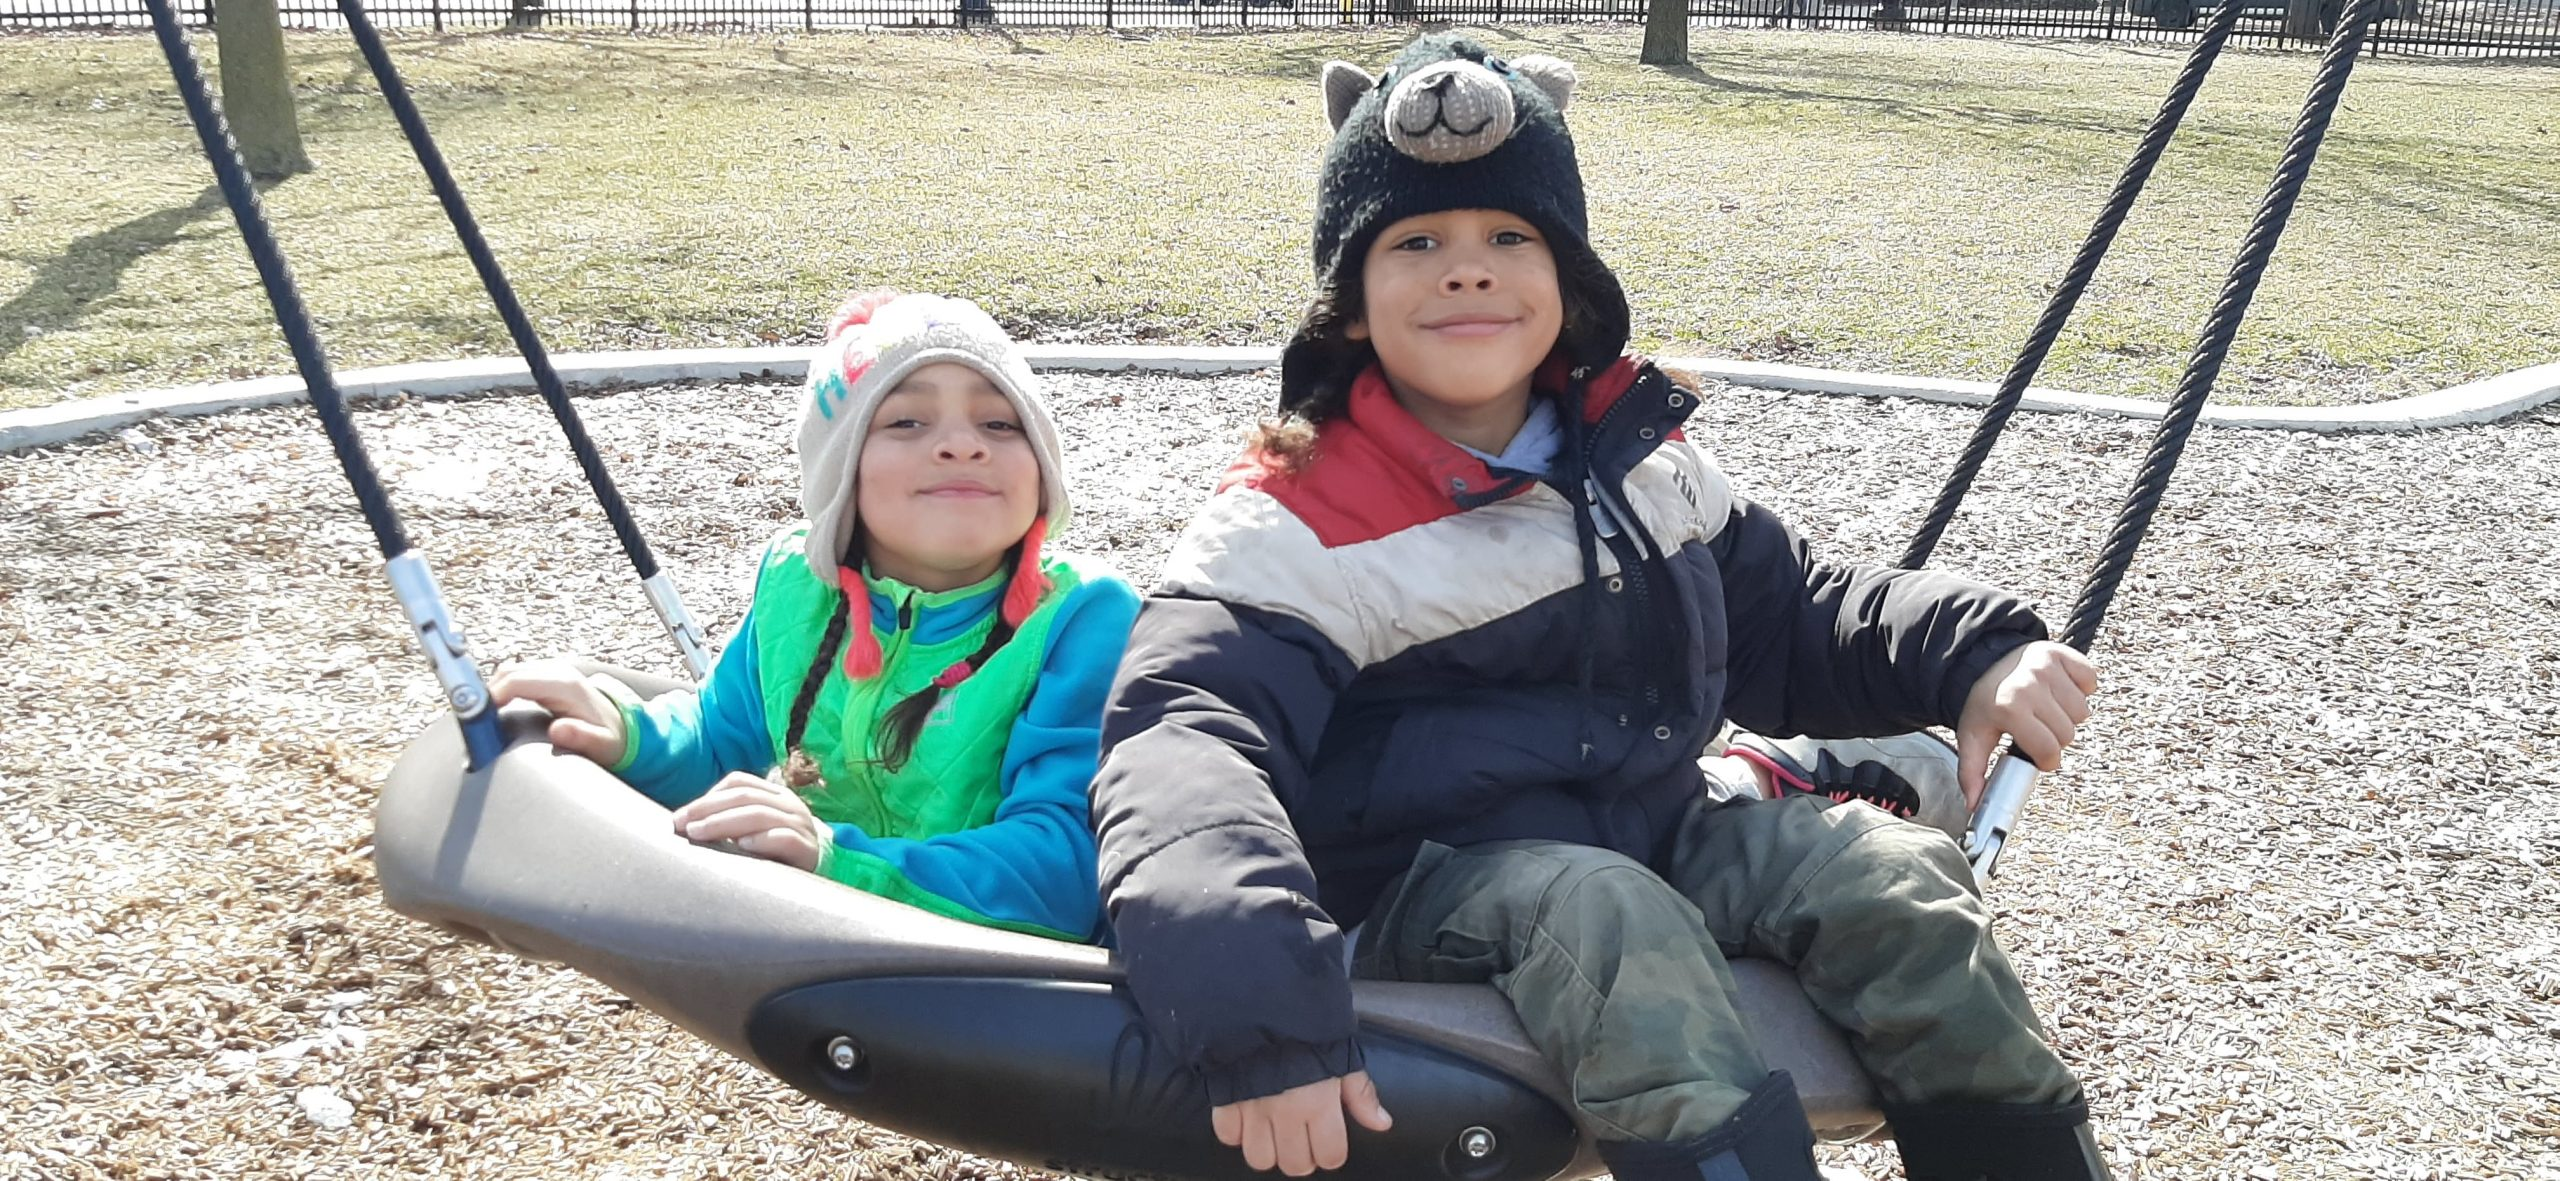 Twins, Alexandria and Sebastian are on a playground sitting side-by-side on a large swing and smiling.